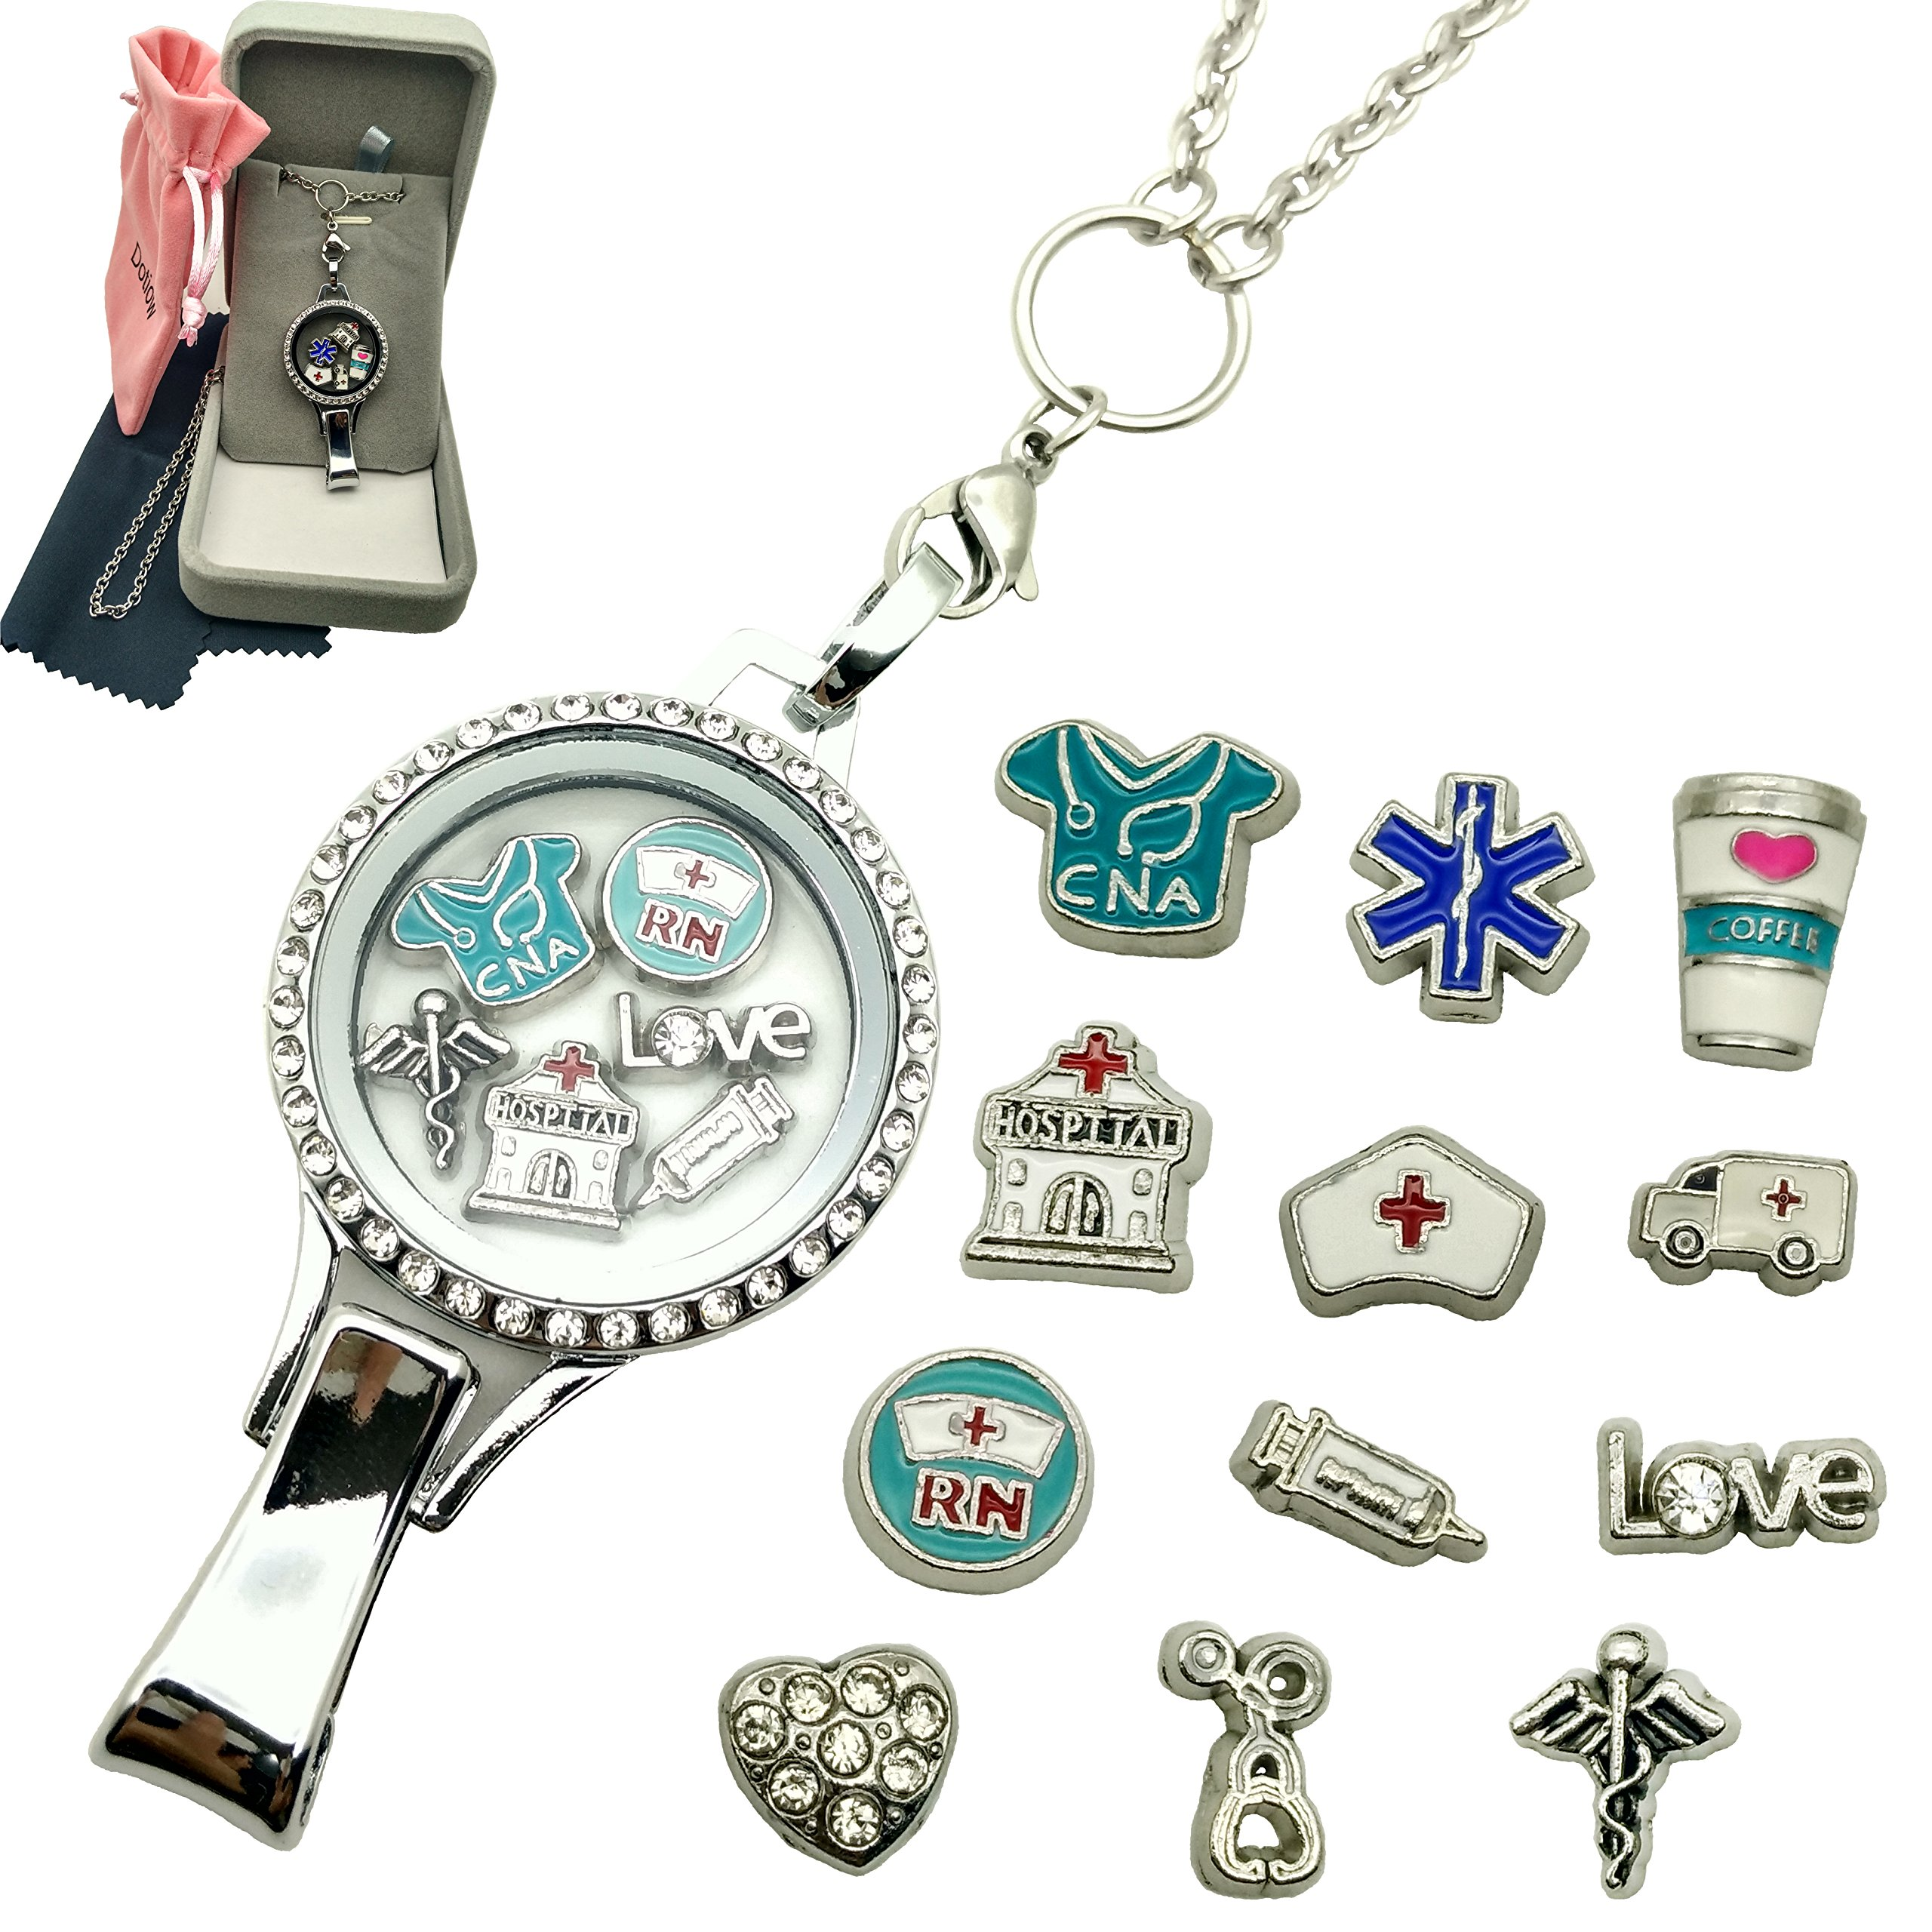 Dotiow Floating Locket Lanyard Glass Locket ID Badge Holder with 12pcs/set Nurse Theme Floating Charms 30 inch Stainless Steel Chain Necklace (Nurse-magnetic-lanyard)